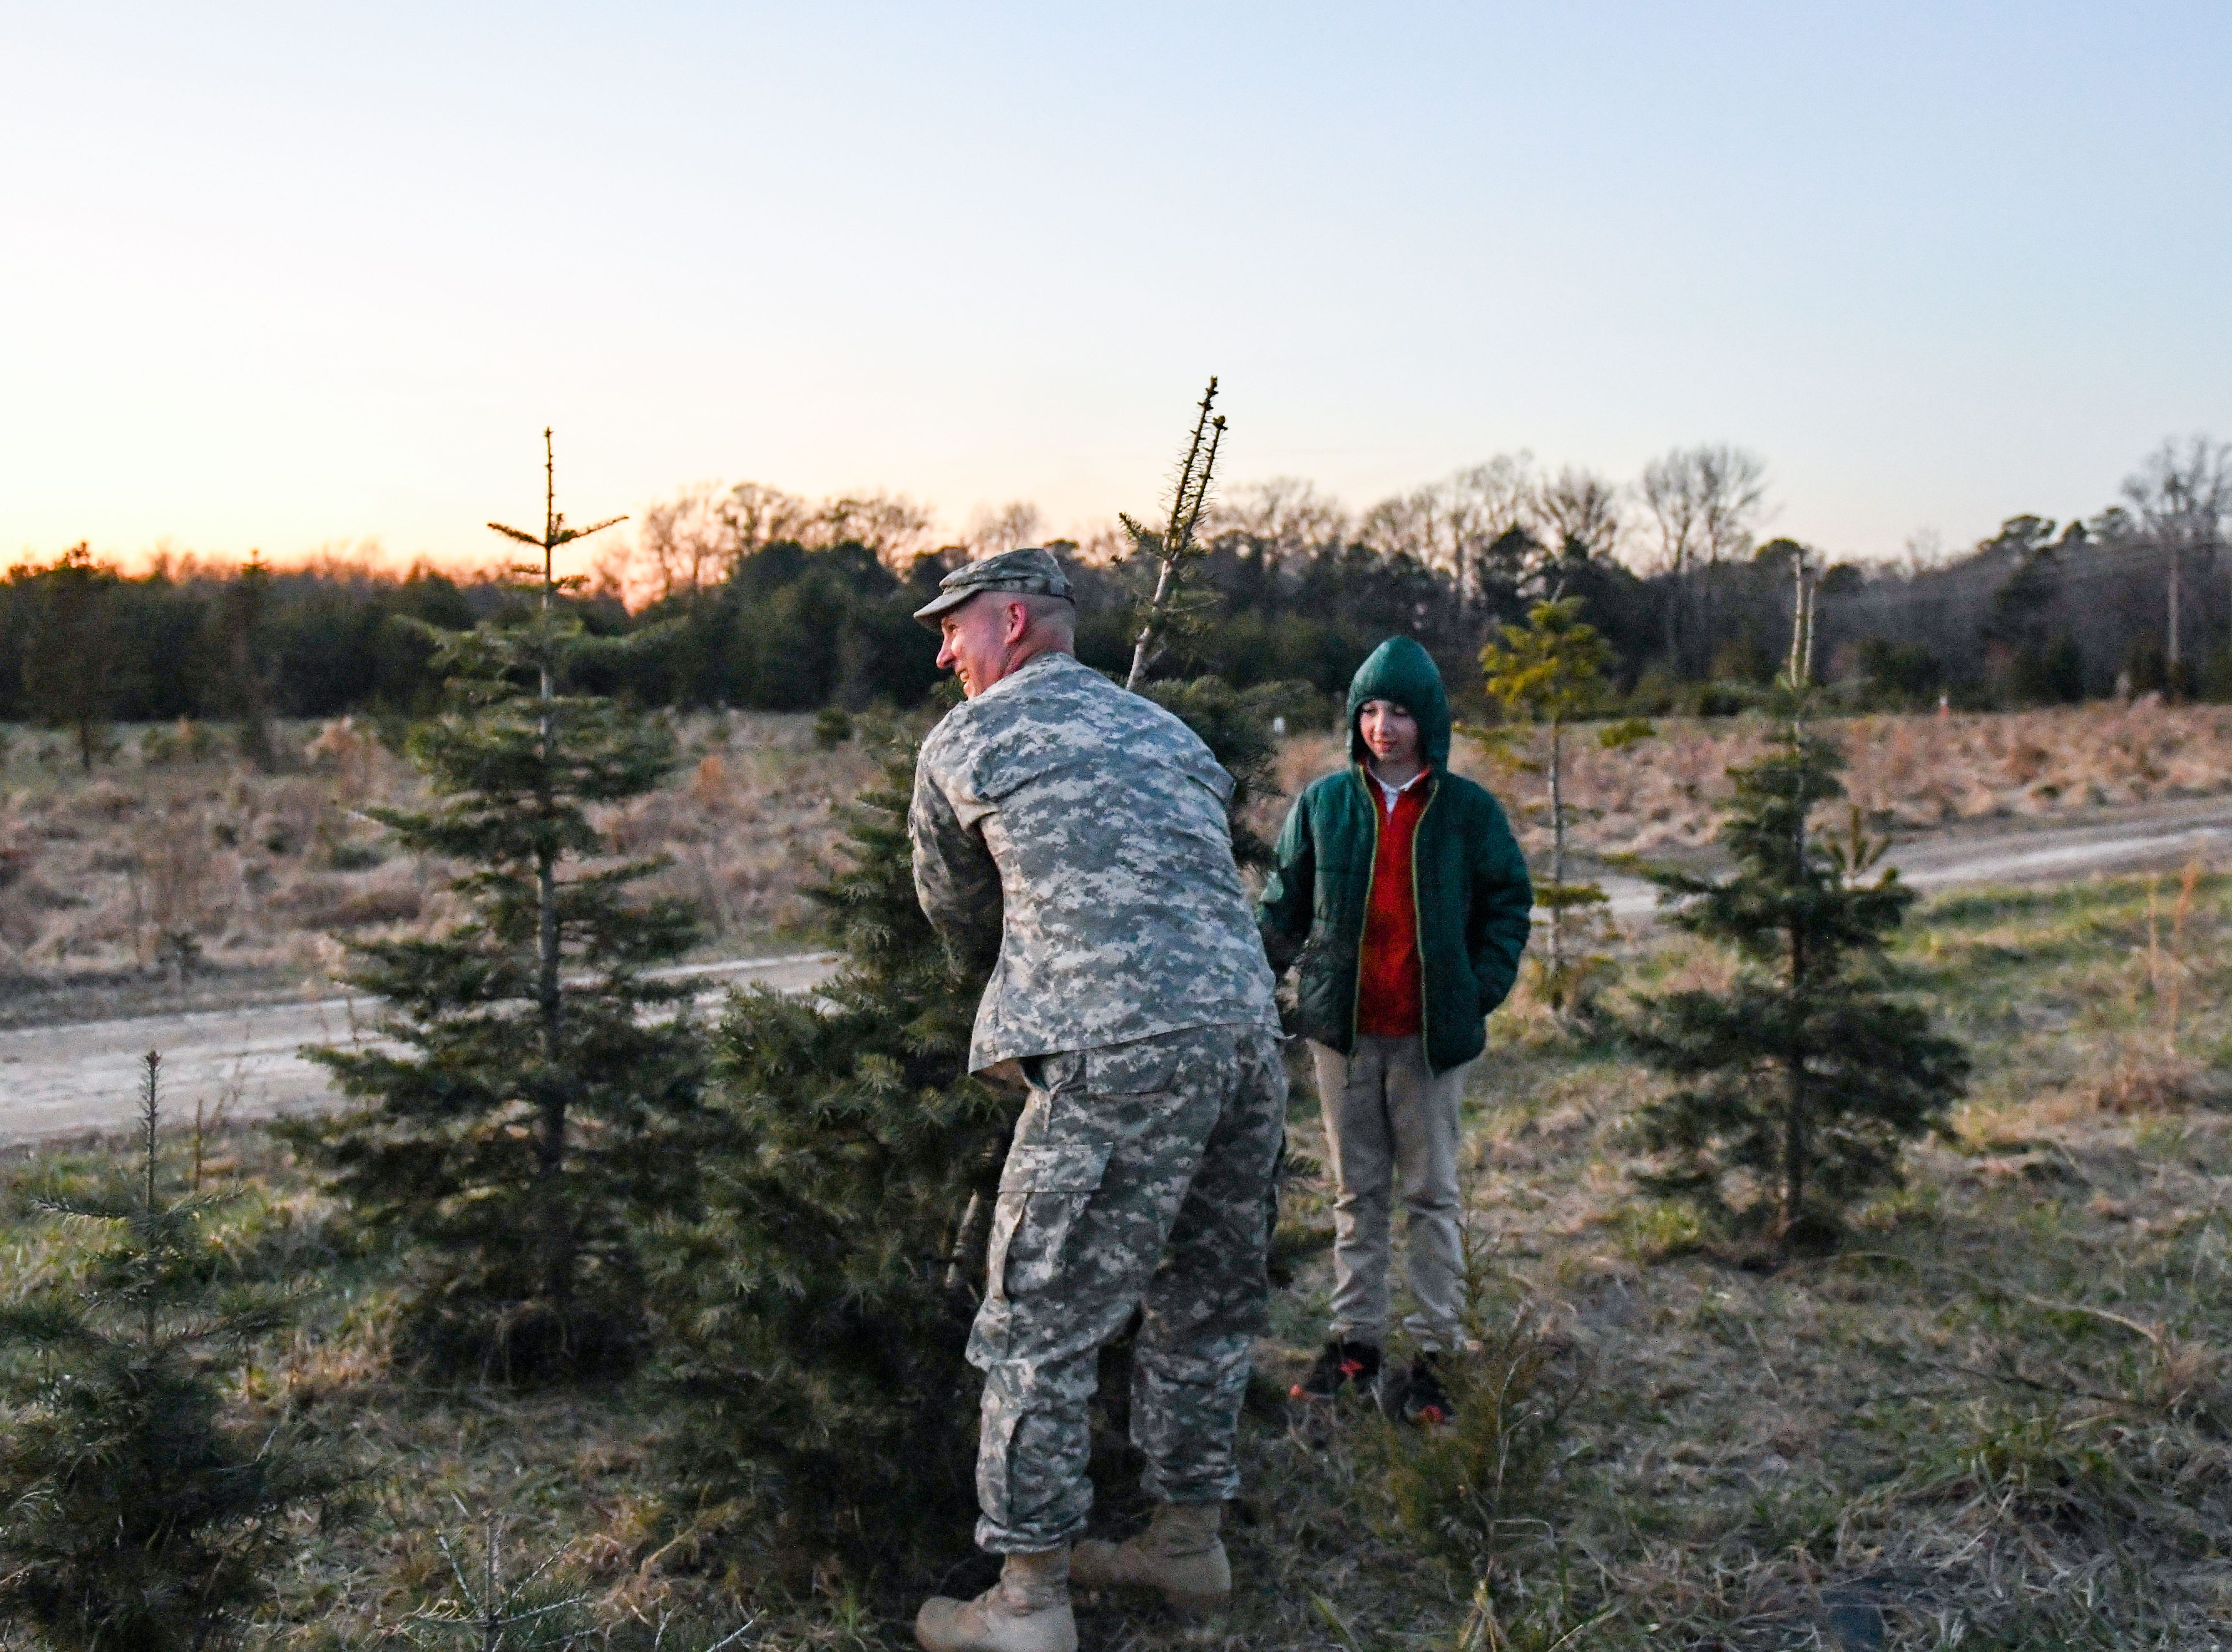 Tom Nichols cuts down a Christmas tree with son Brody Nichols at Nichols Tree Farm in Hebron on Thursday, Nov 30, 2018.